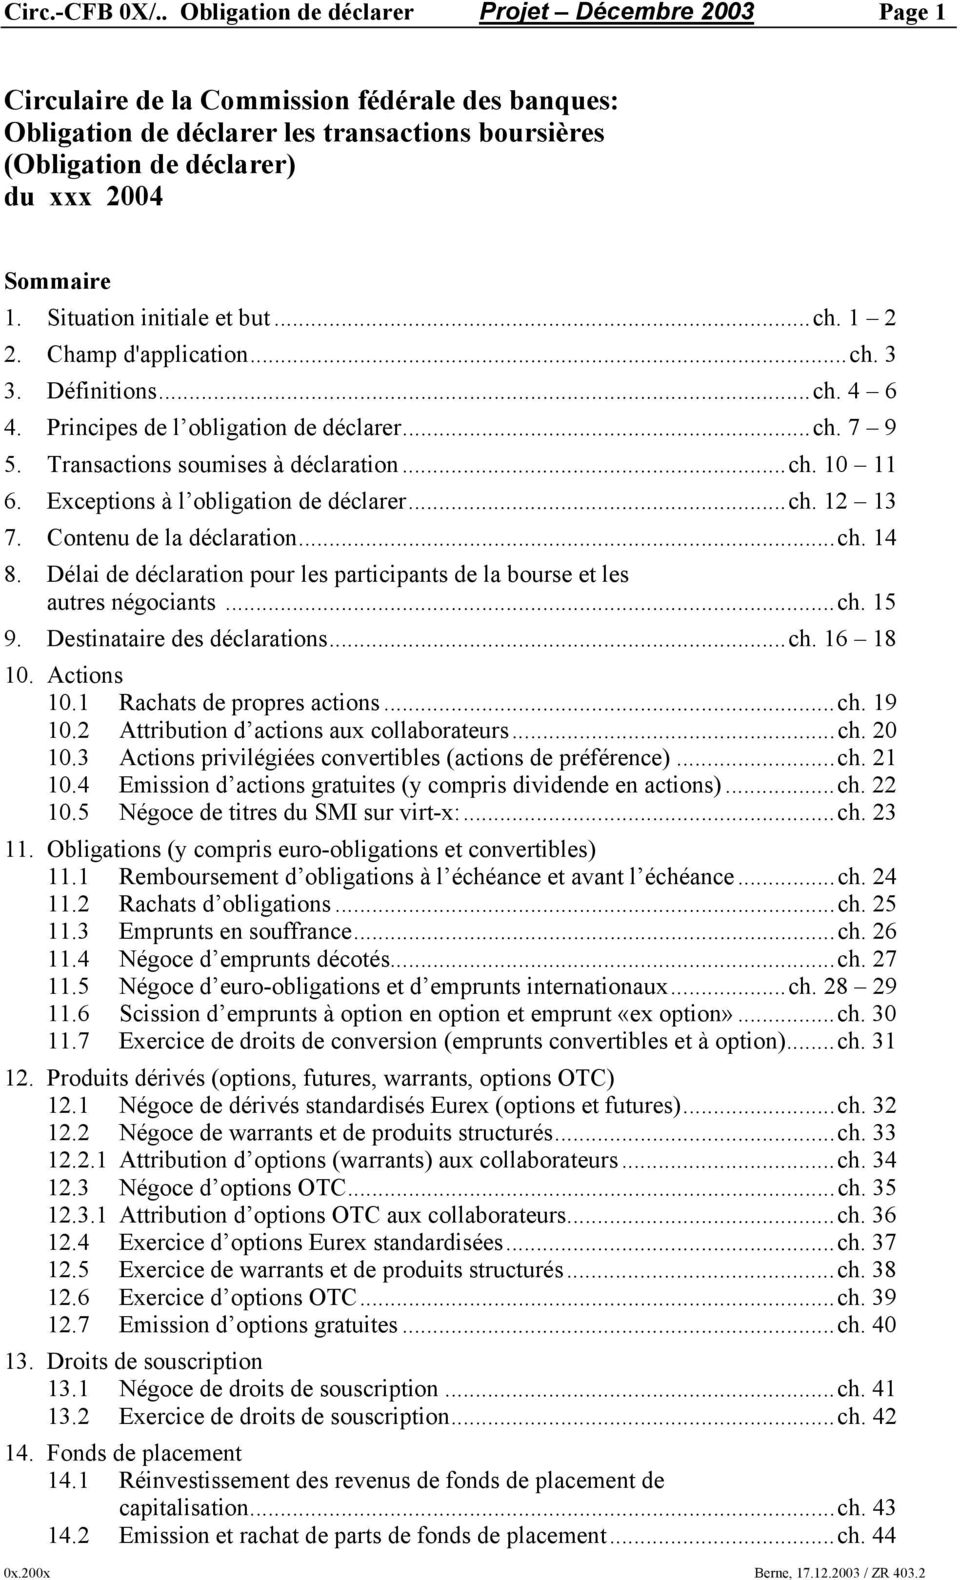 1. Situation initiale et but...ch. 1 2 2. Champ d'application...ch. 3 3. Définitions...ch. 4 6 4. Principes de l obligation de déclarer...ch. 7 9 5. Transactions soumises à déclaration...ch. 10 11 6.